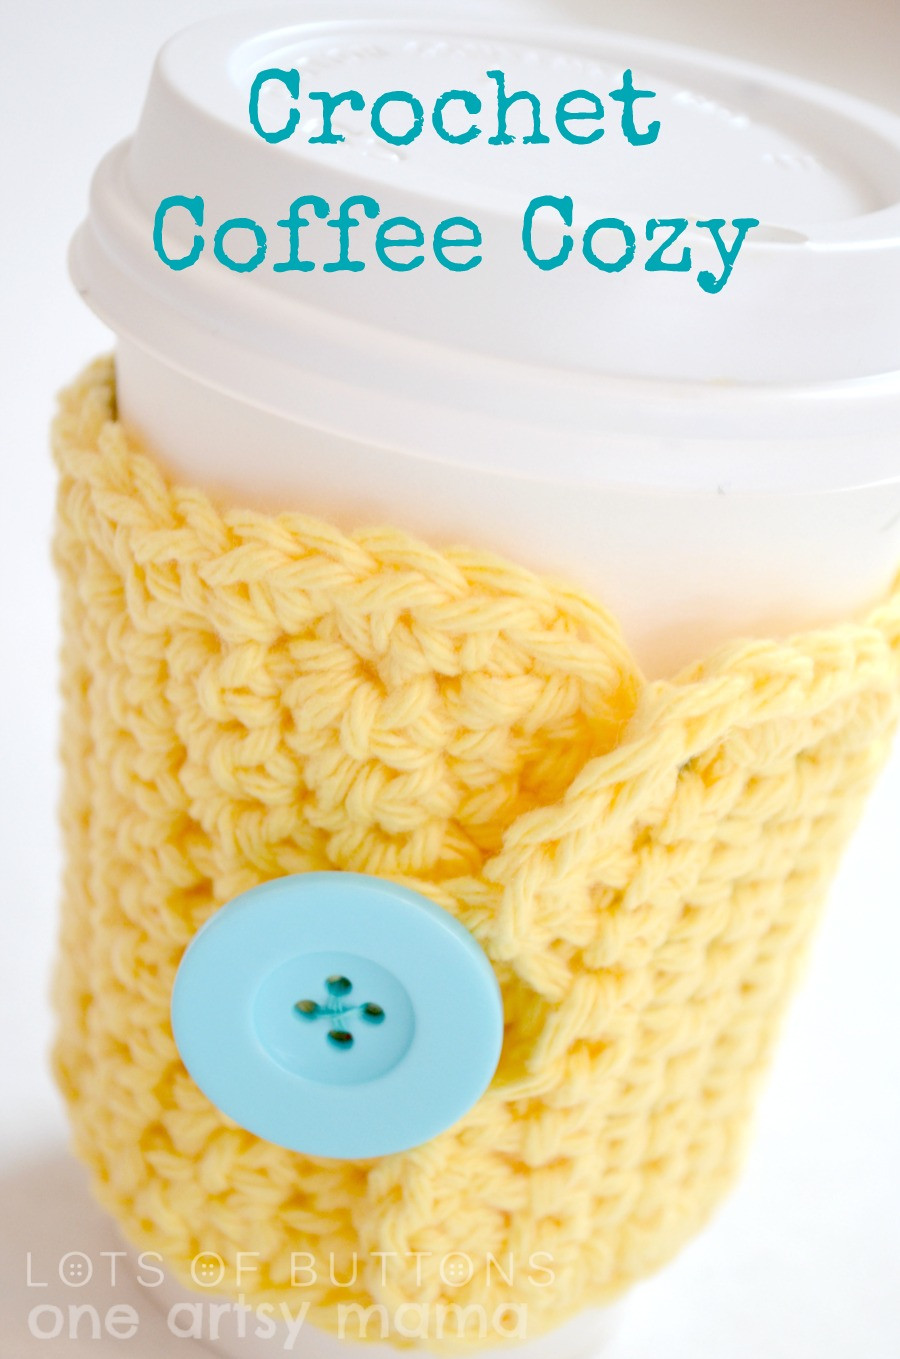 Crochet Coffee Cup Cozy Lovely Crochet Coffee Cozy Amy Latta Creations Of Crochet Coffee Cup Cozy Elegant Sunny Stitching Pinned It & Did It Mug Cozy Crochet